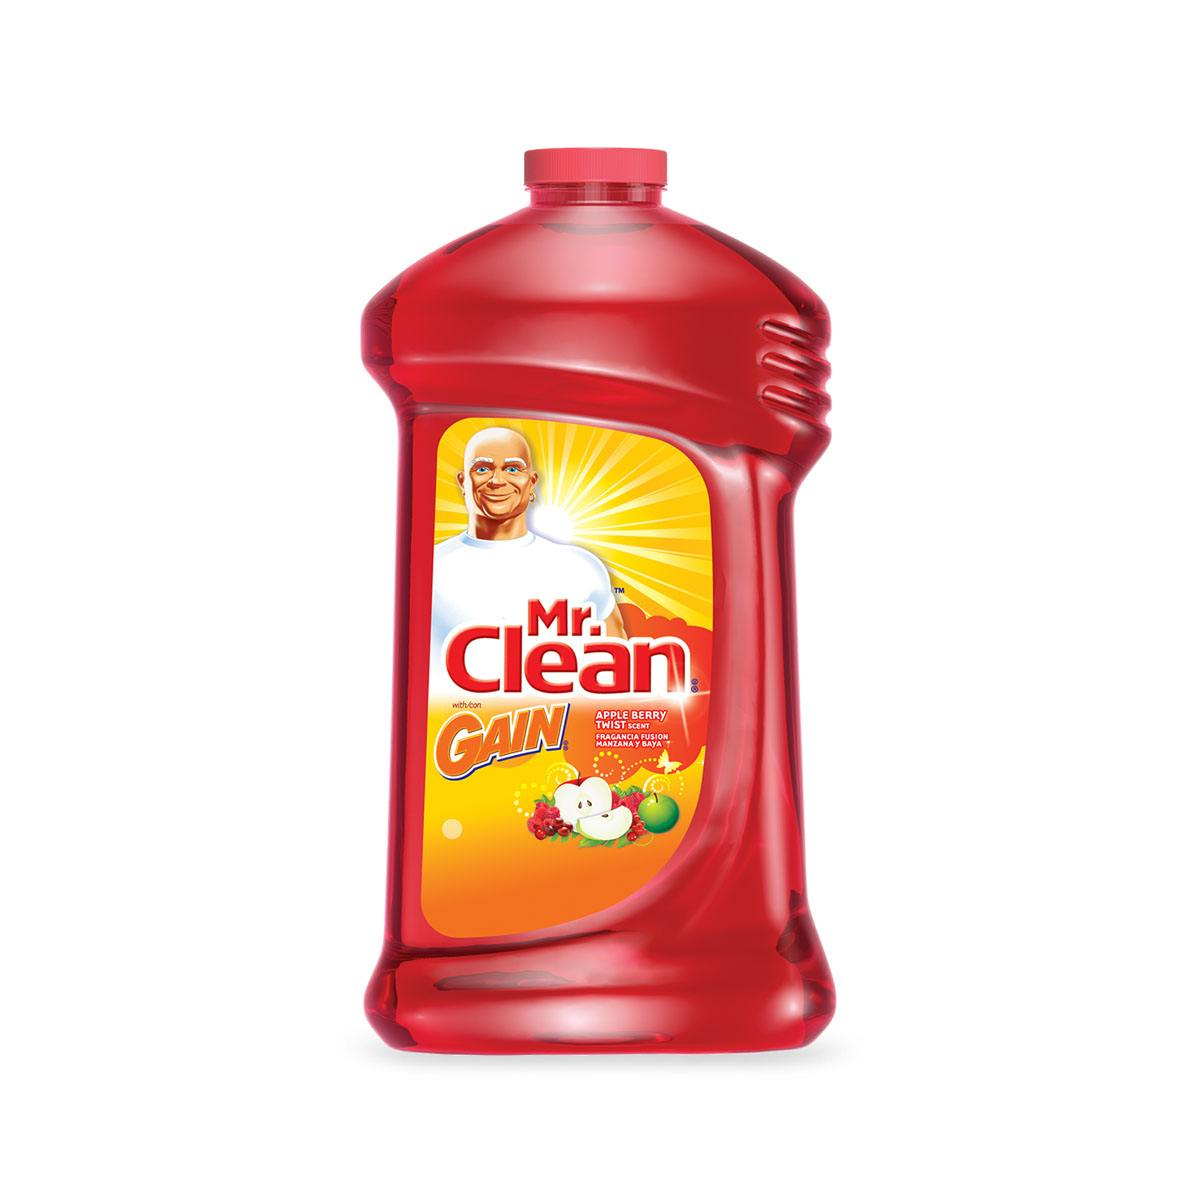 Limpiador líquido Mr. Clean con aroma Gain Apple Berry Twist